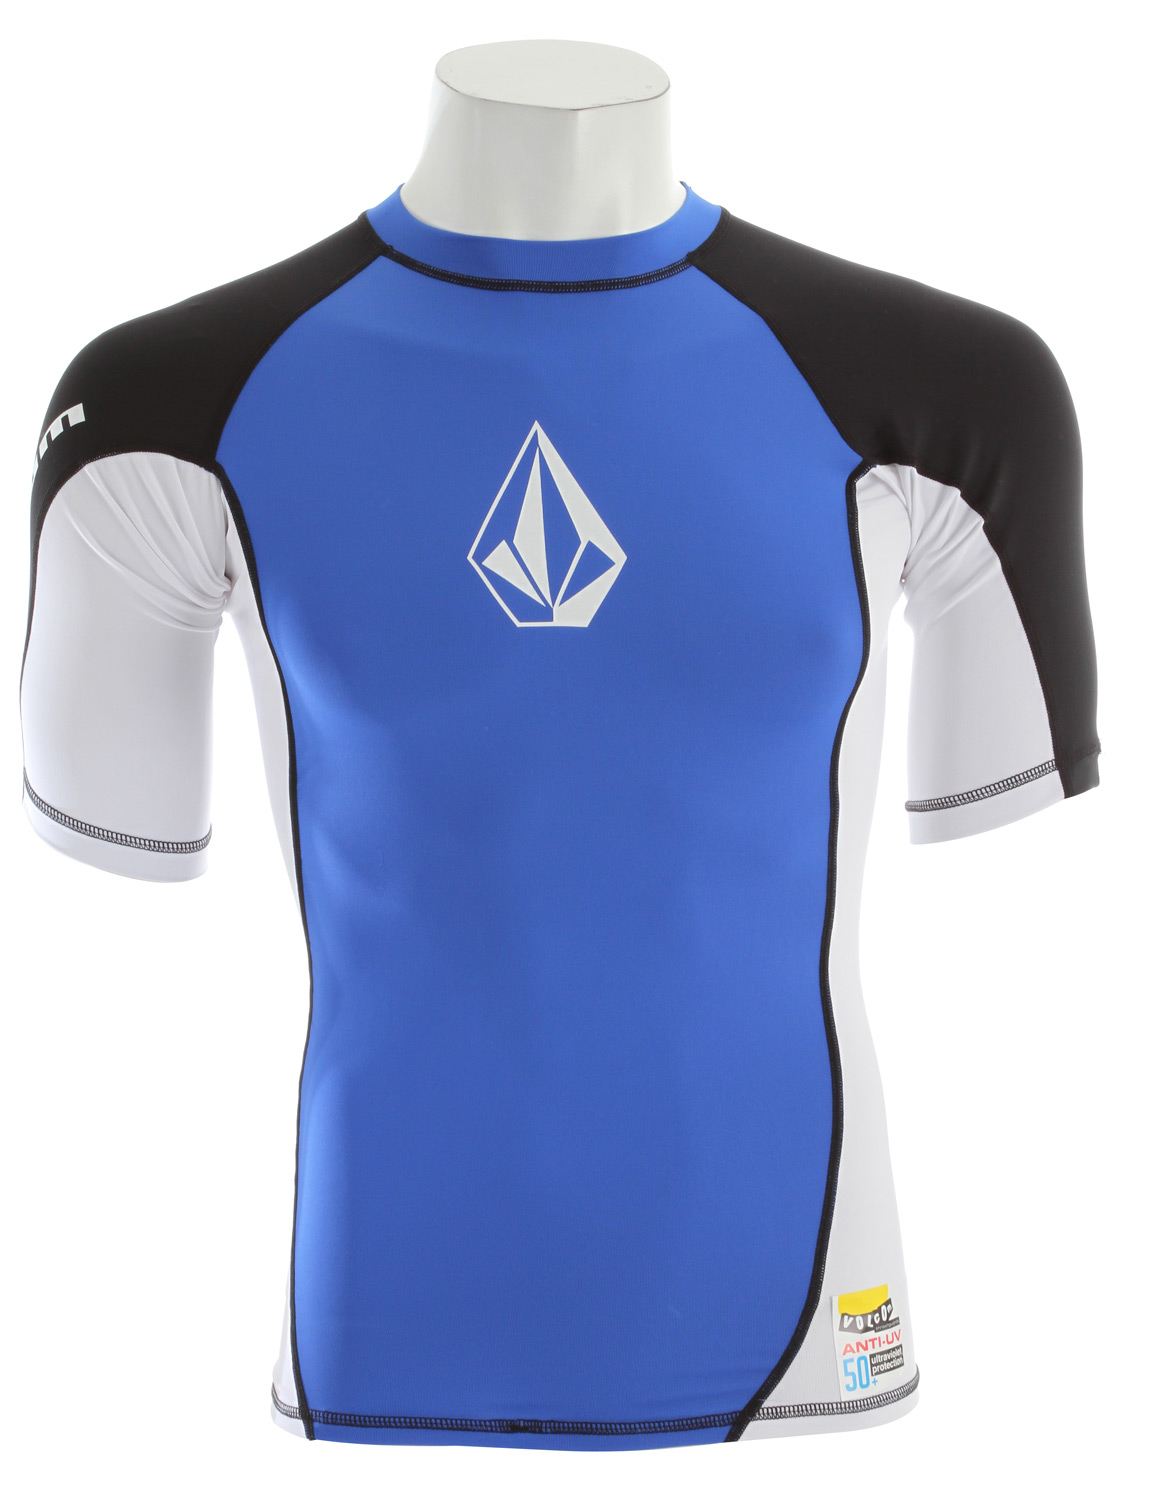 Surf Built with the same power and procession as out best-selling boardshorts, the long sleeve Colorblocked is more than just a rashguard-it's a thrashguard! Turn it and burn it, you'll be amazed at the damage it can endure. Plus, it keeps the rays at bay with 50+ anti UV armor. 88% nylon/12% elastane. - $28.95